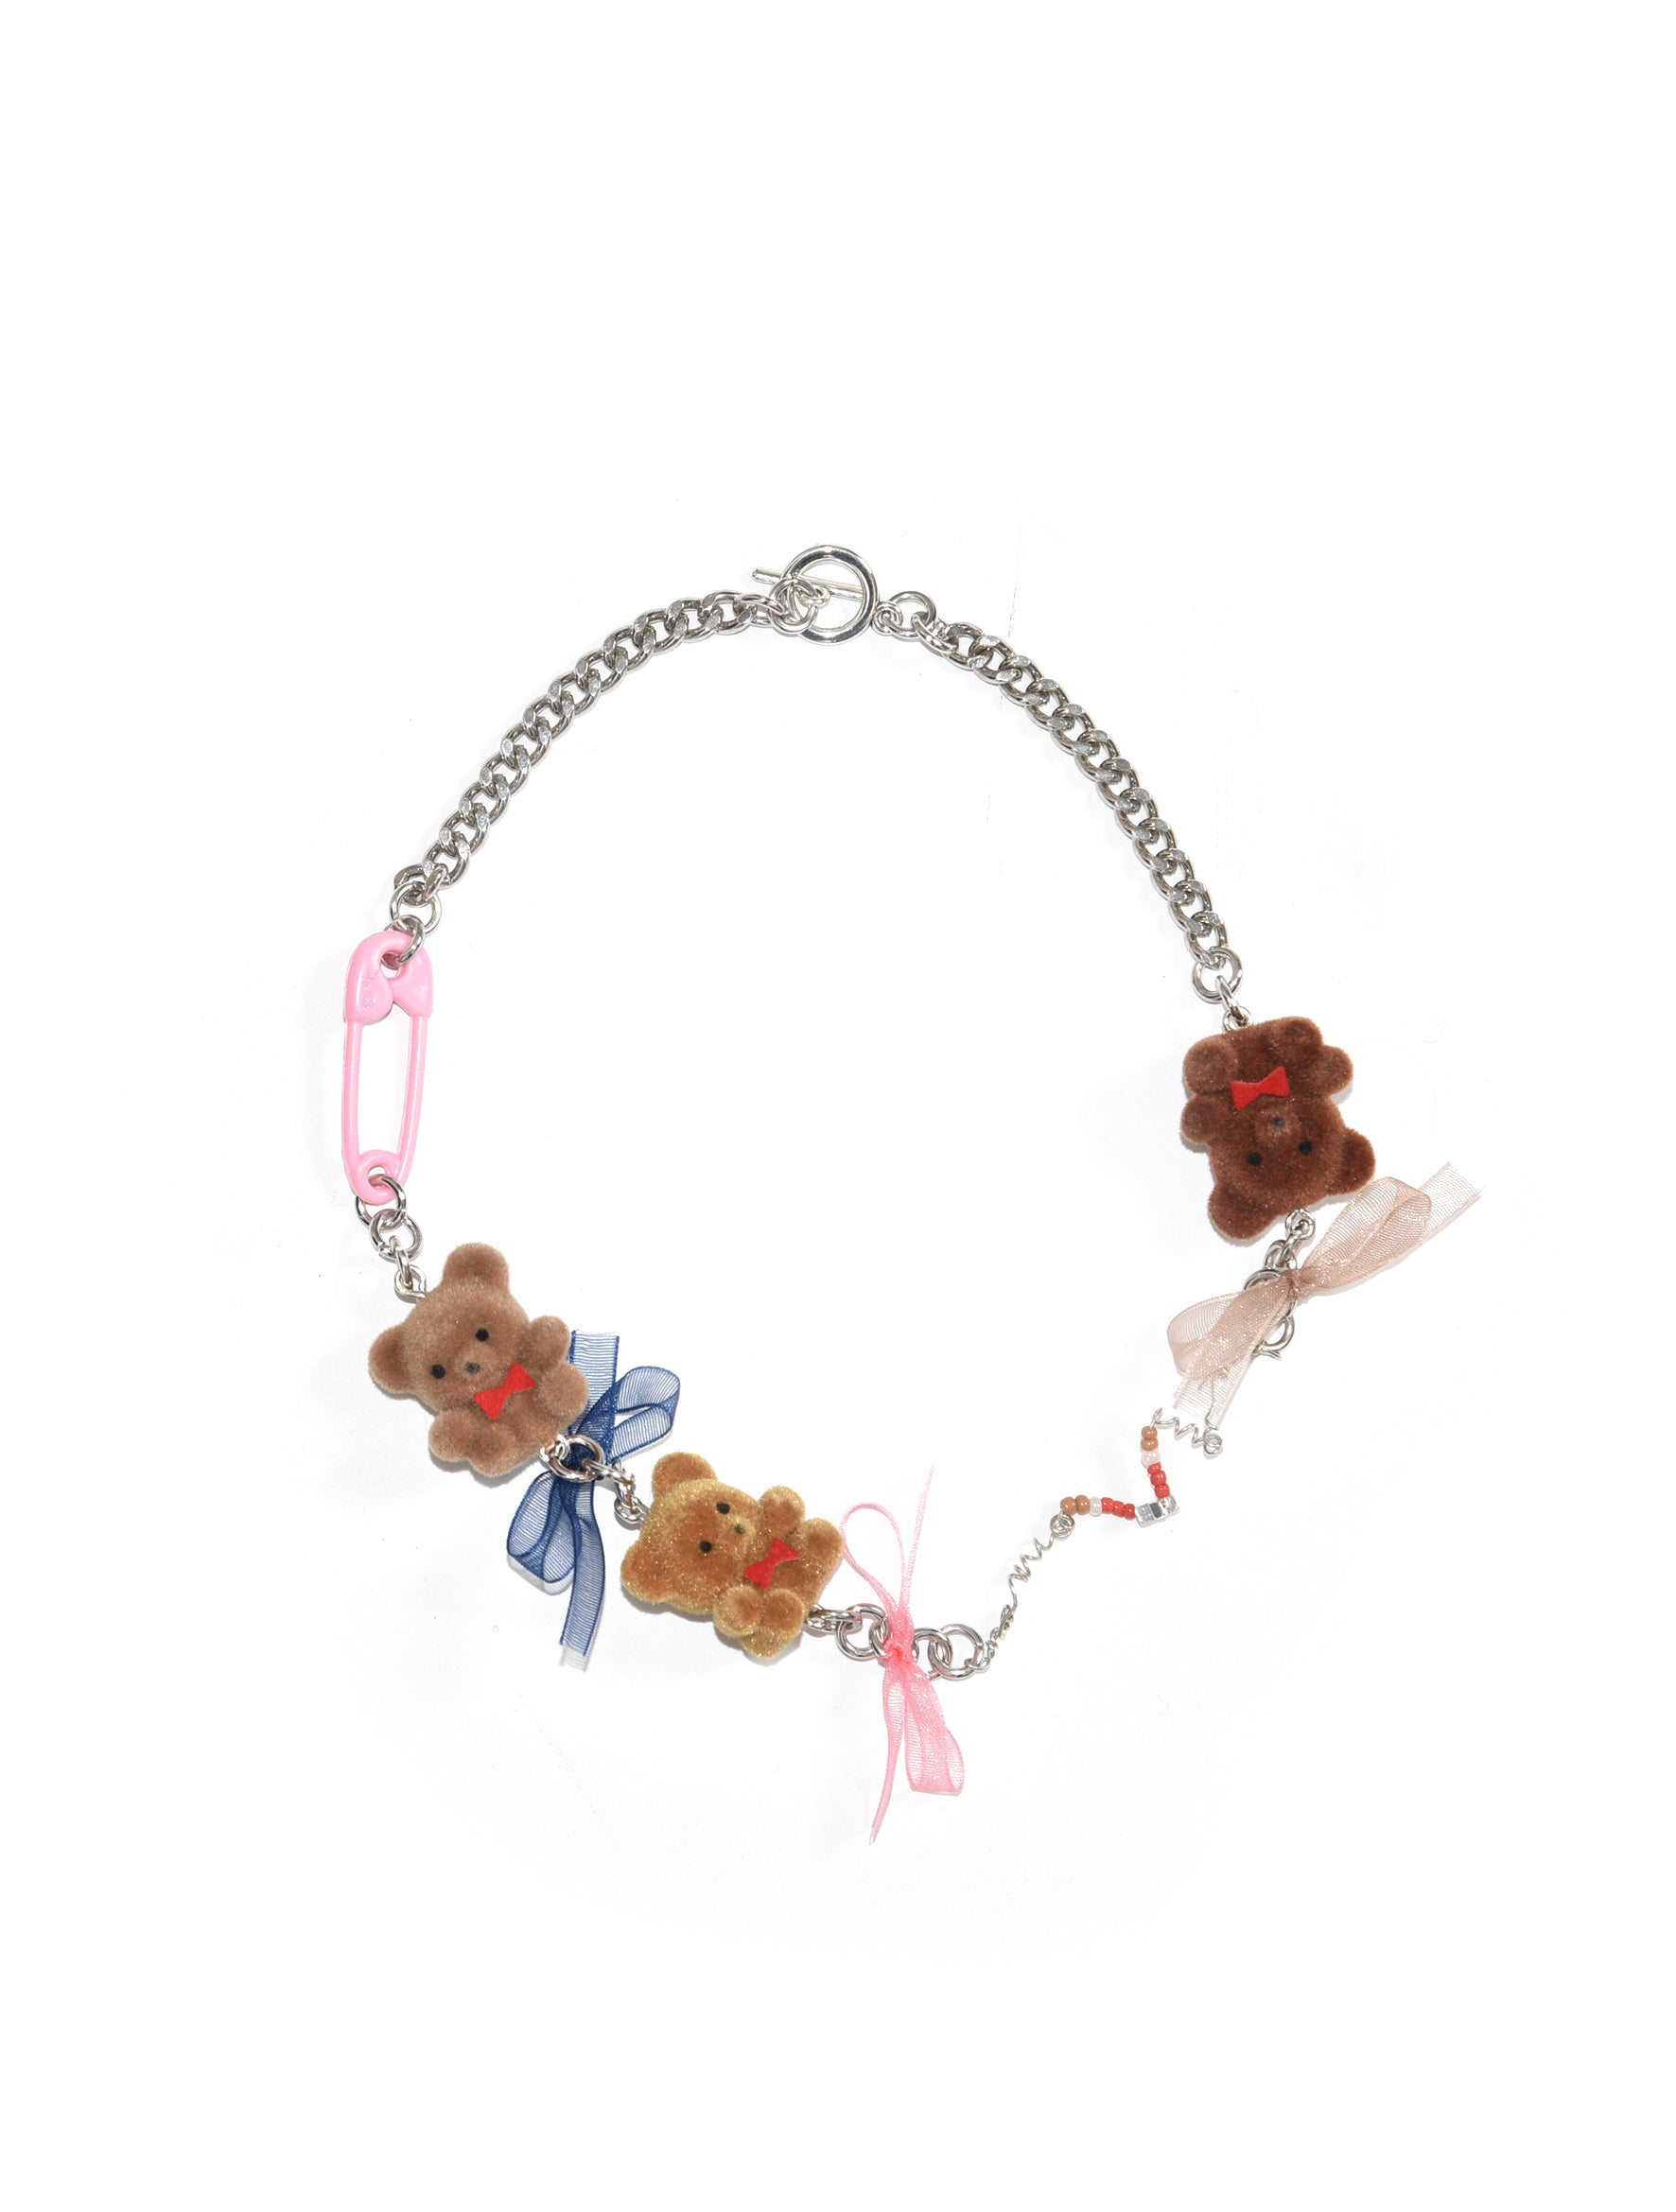 Neith Nyer Teddy Bear Necklace